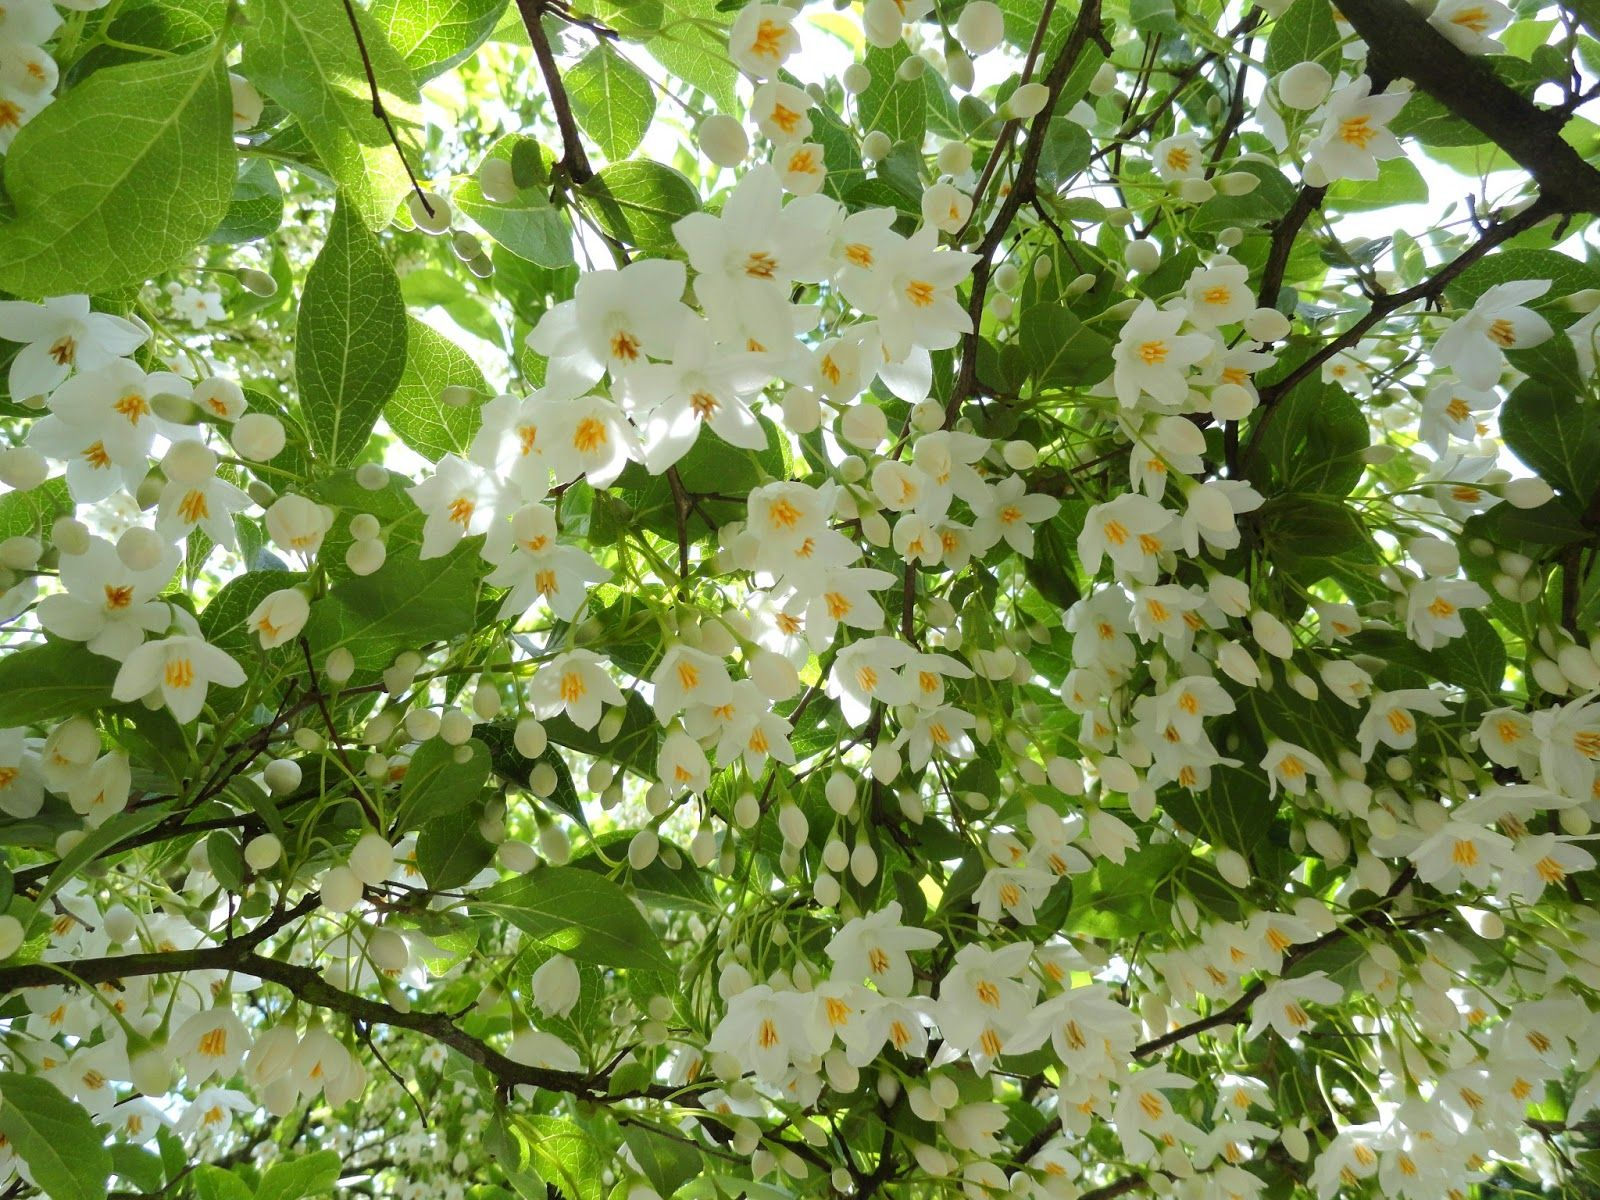 Small Tree Idea Styrax Japonica Japanese Snowbell Blooms Profuse Small White Flowers That Dan Small Trees For Garden Shrubs For Landscaping Ornamental Trees